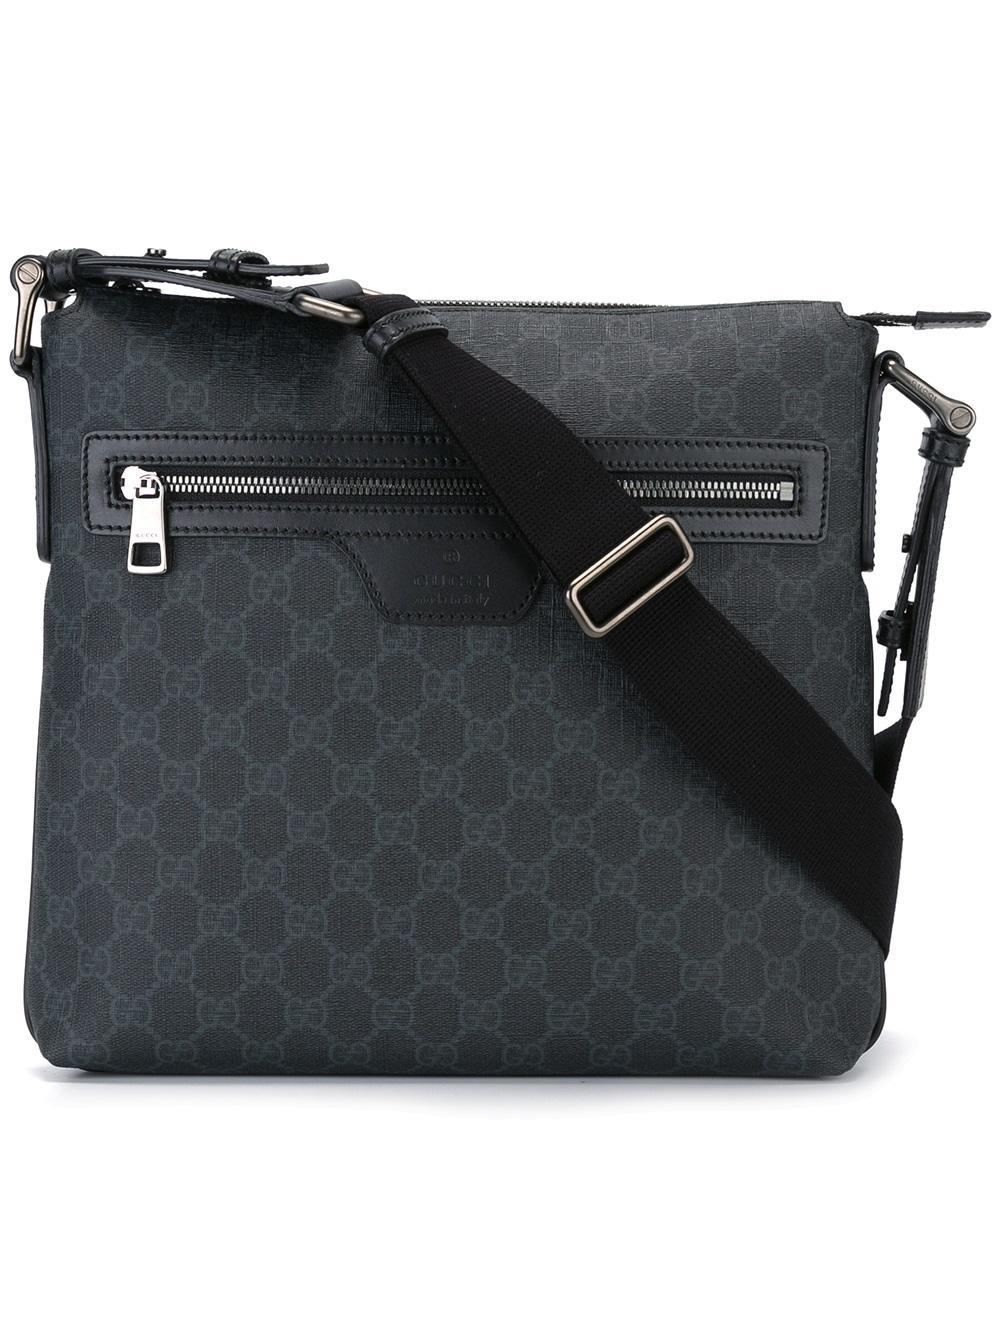 451a1dbd24a050 Gucci - Monogram Messenger Bag - Men - Leather - One Size in Gray ...